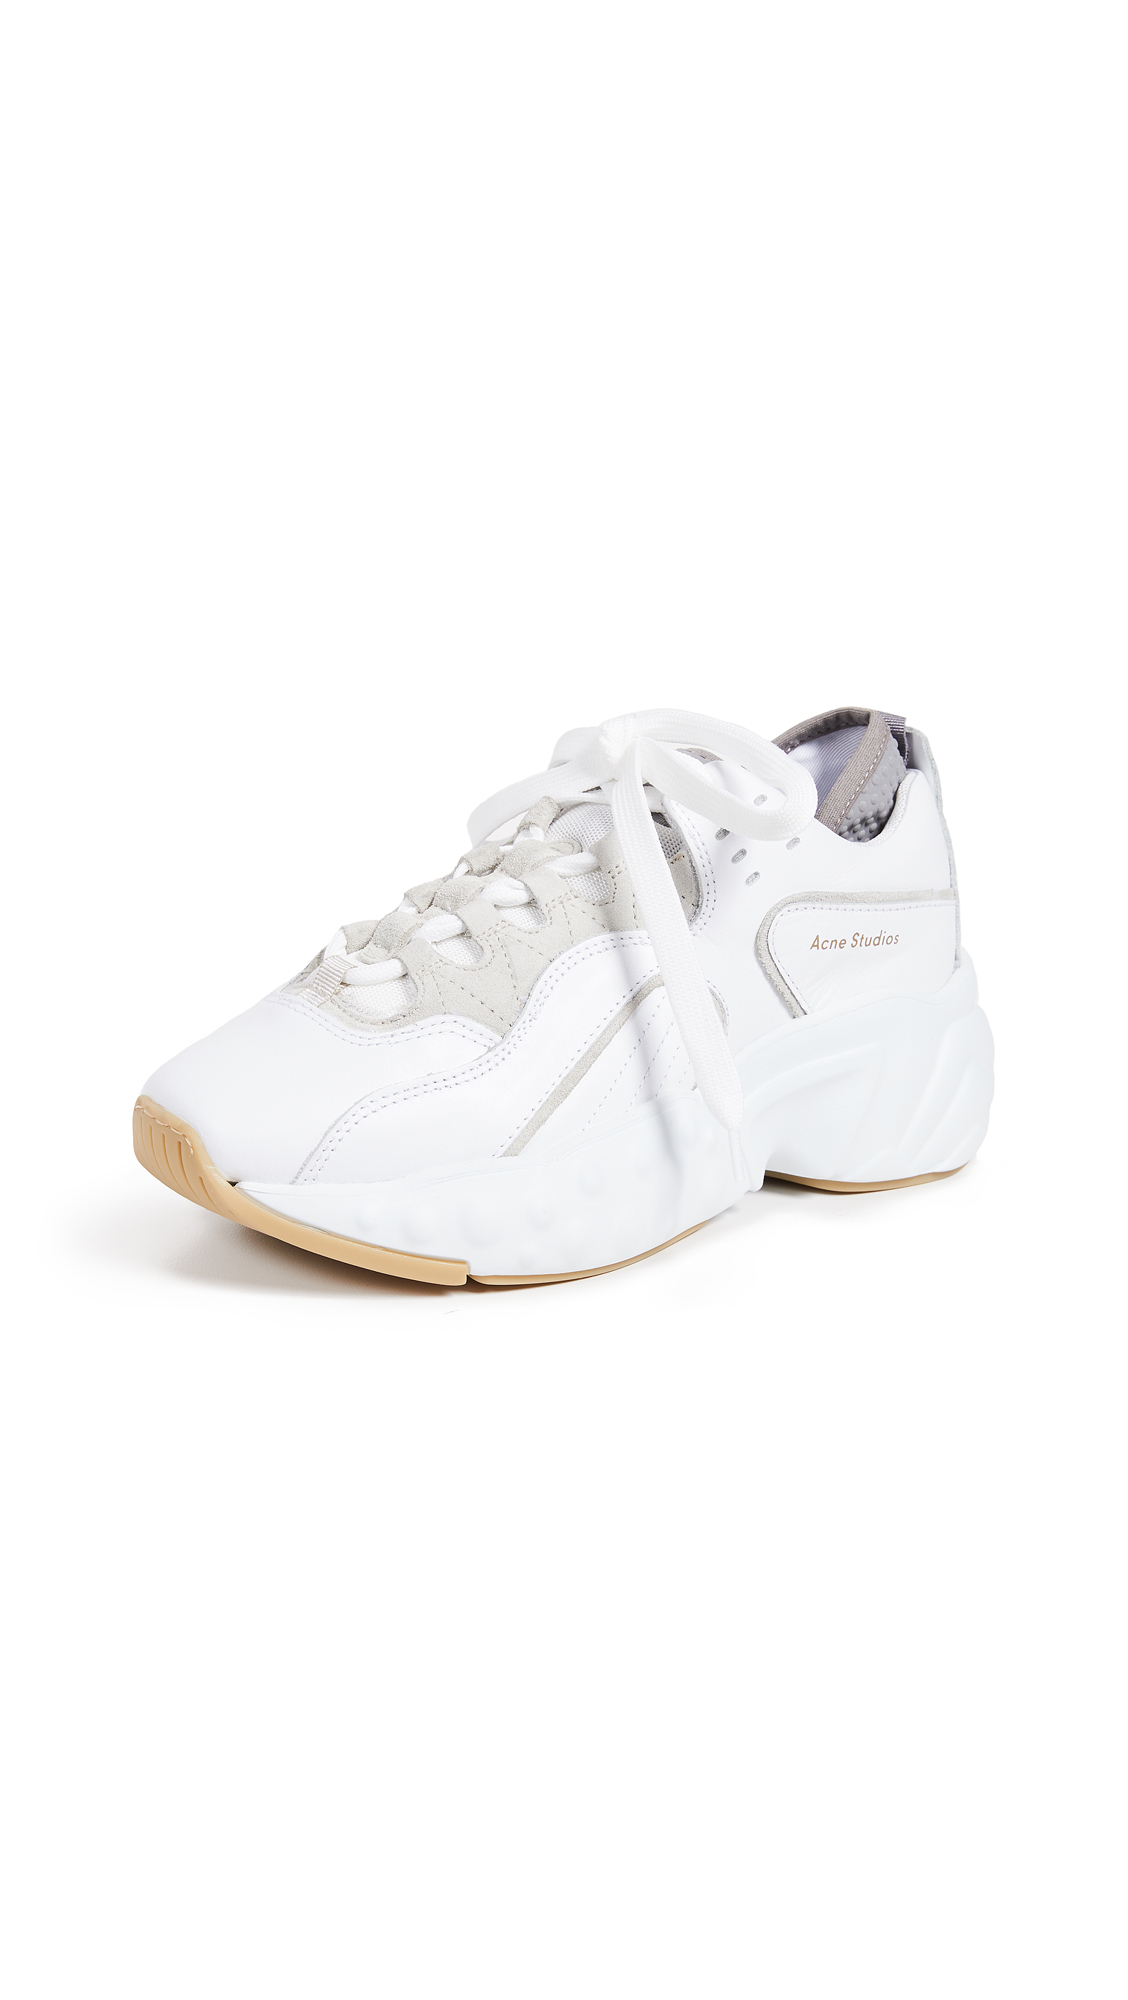 Acne Studios Manhattan Sneakers - White/White